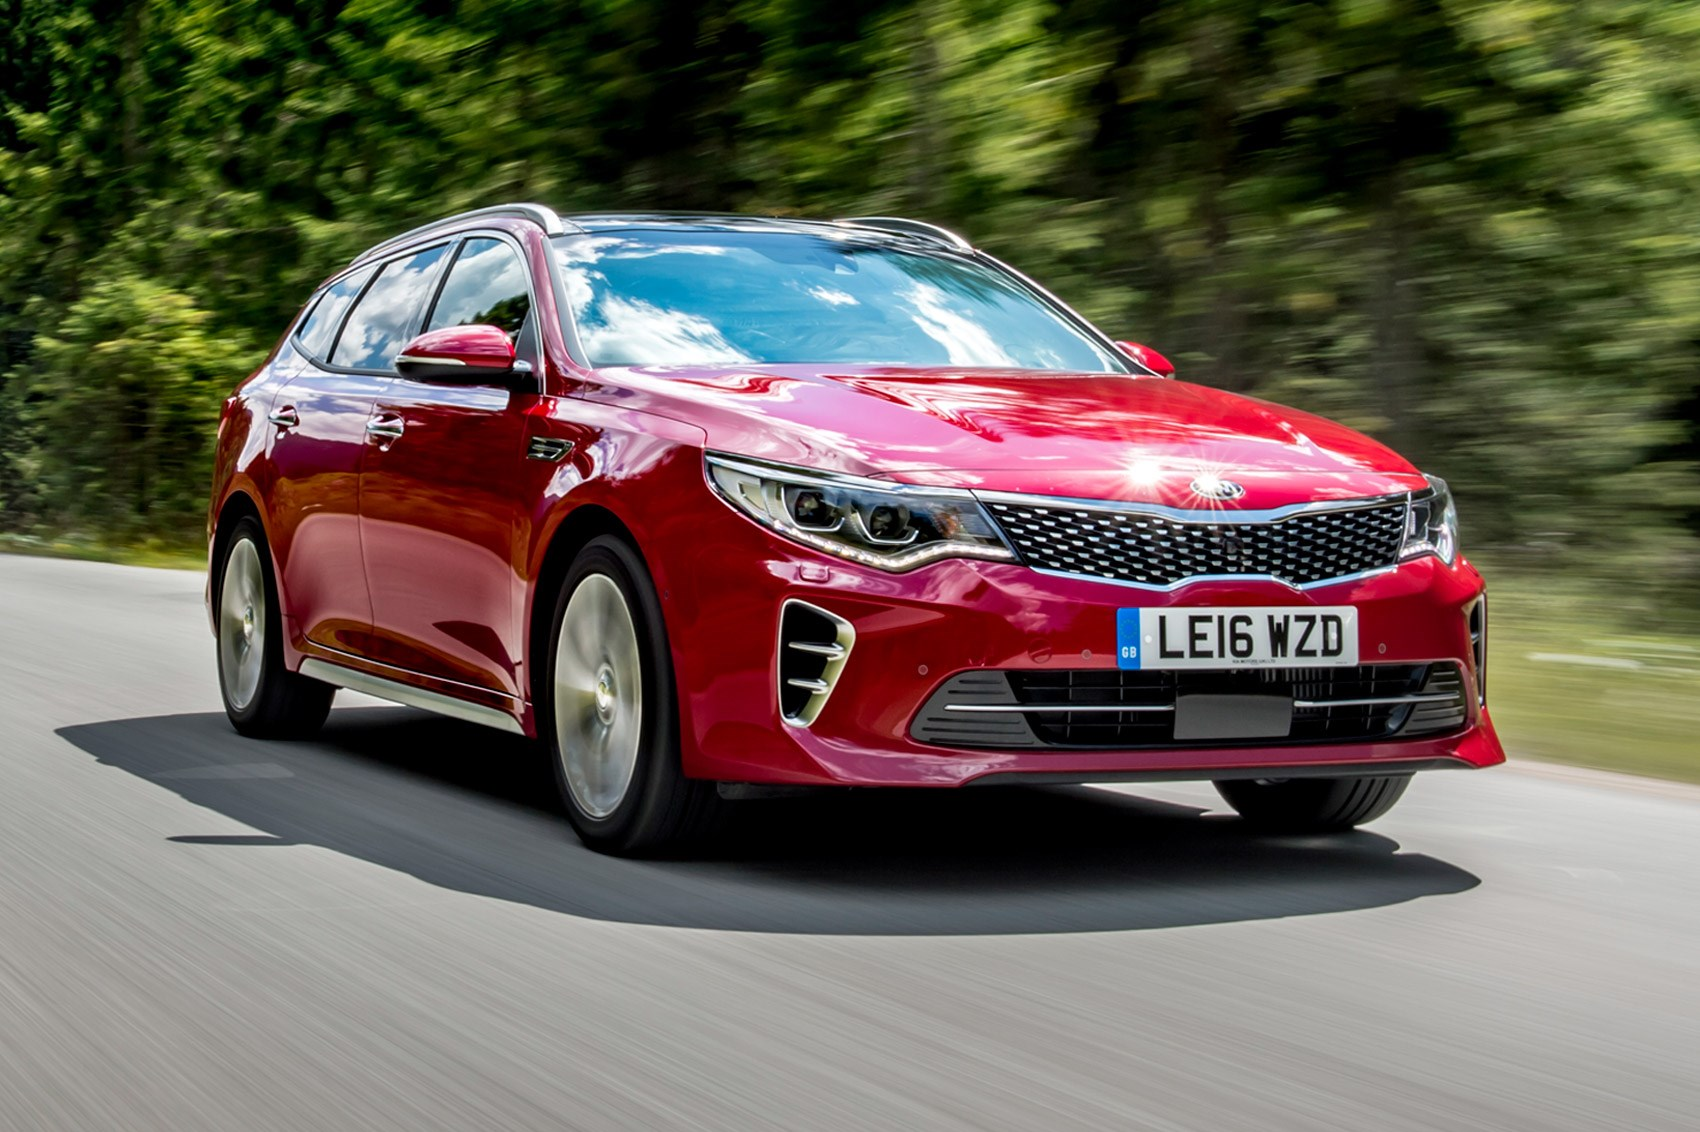 kia hybrid optima gt line cars sportswagon hybrids second hand